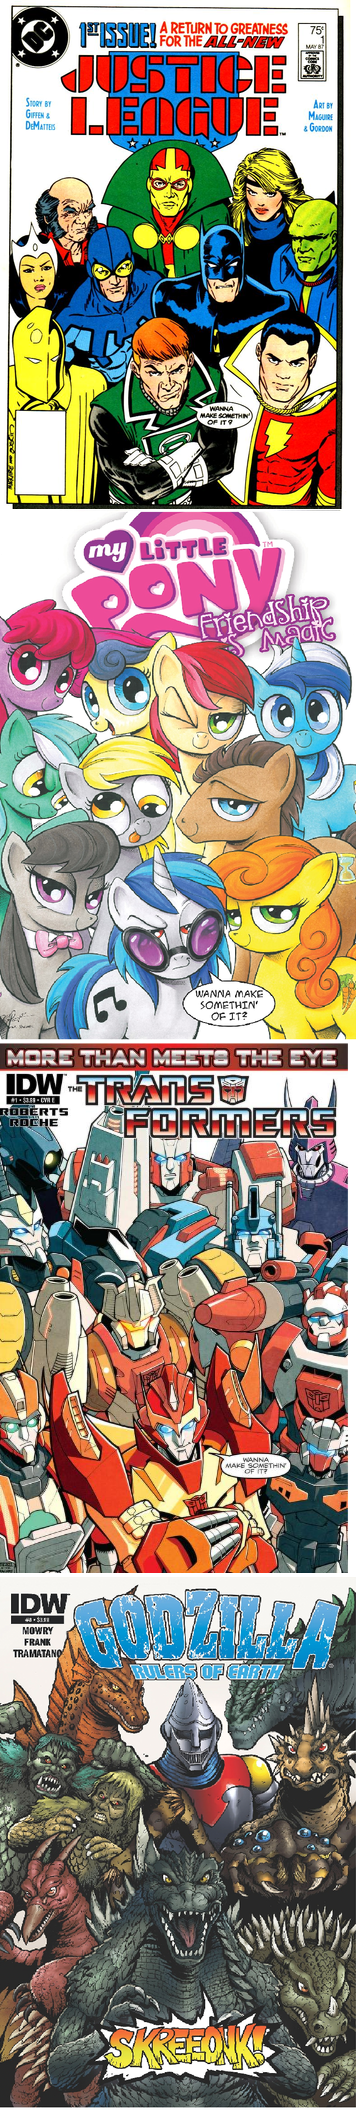 transformers,covers,off the page,justice league,MLP,comic book